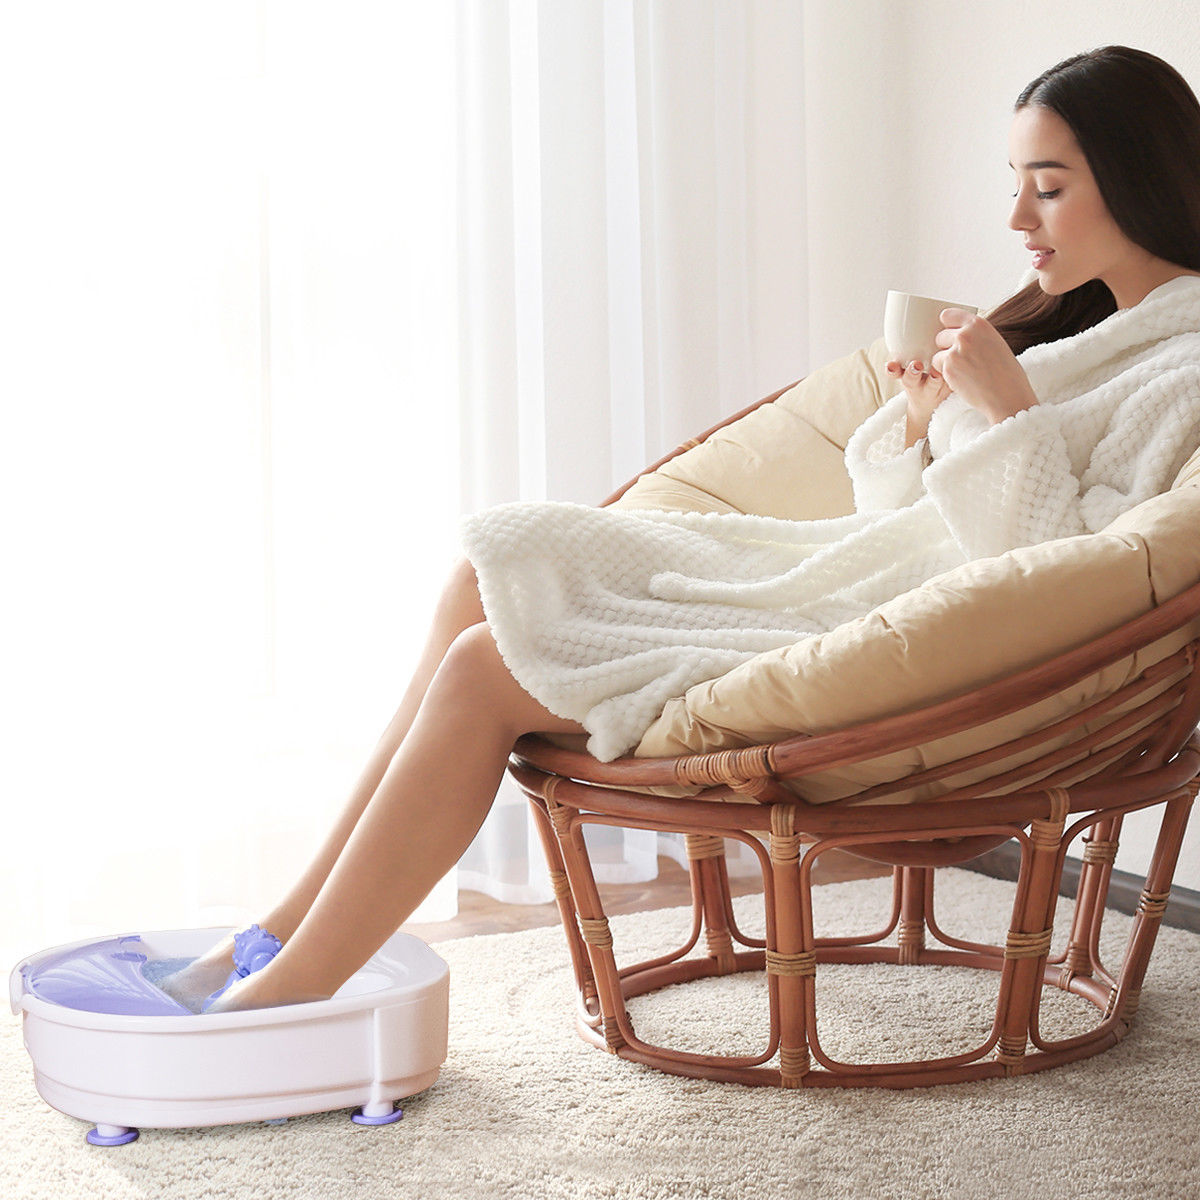 Costway Electrical Foot Basin Tub Point Massage Home Use Therapy Machine Health Heating - image 3 de 9